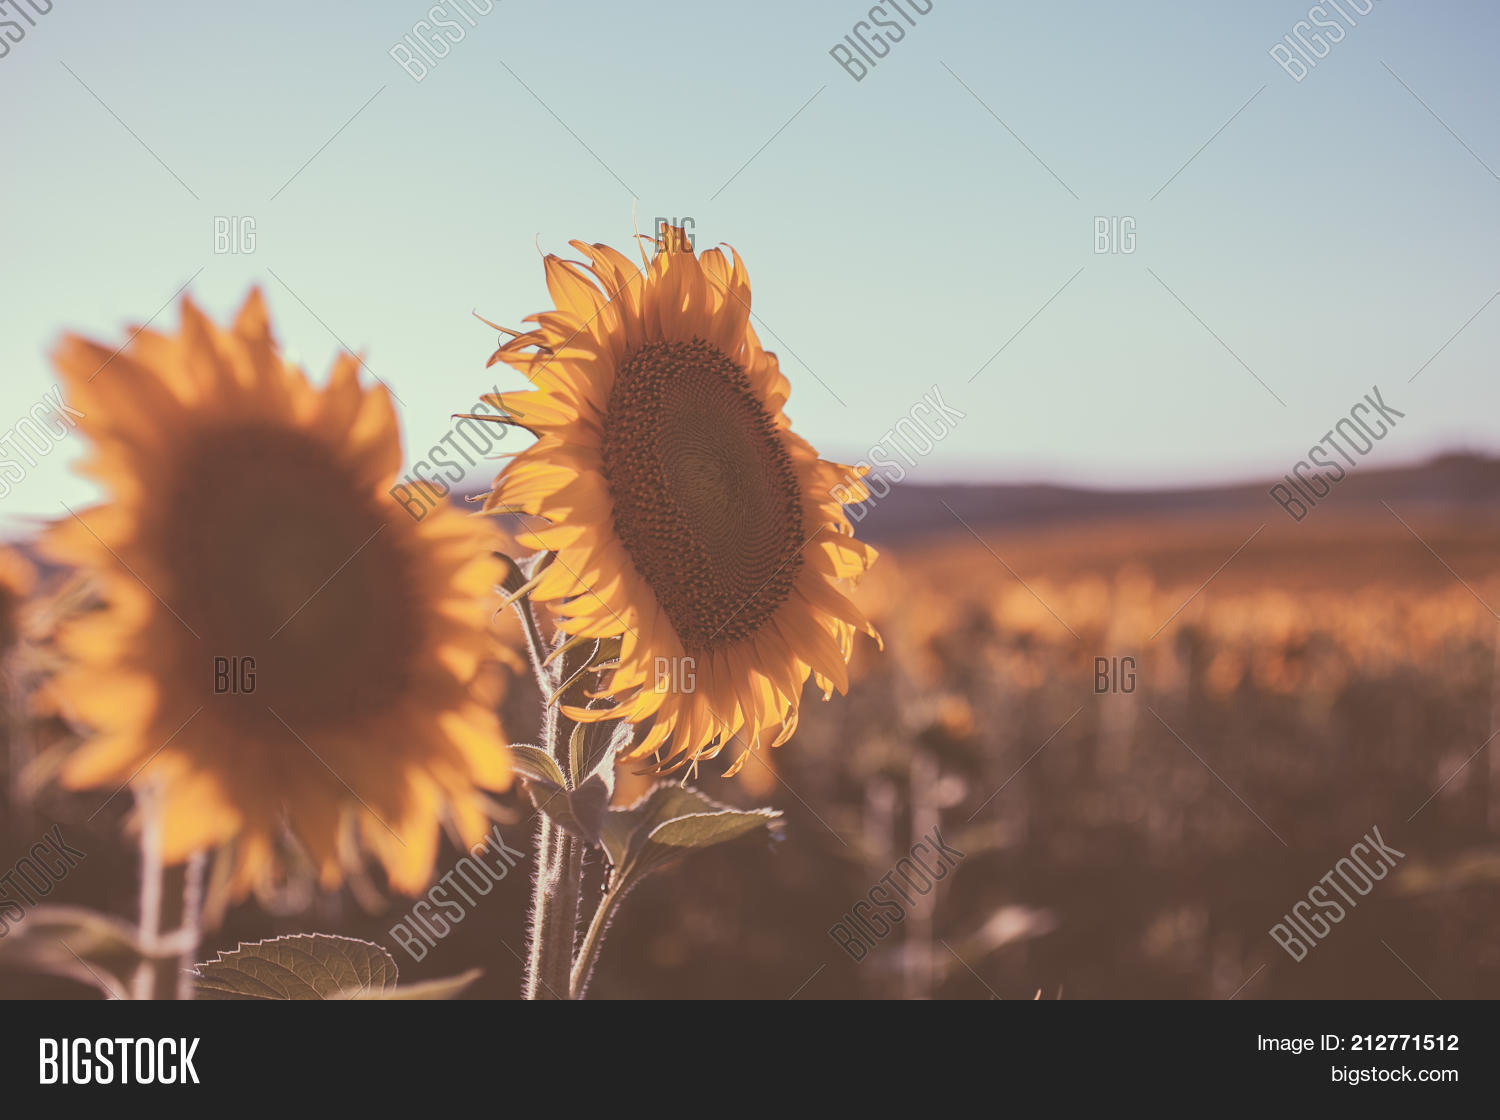 Vintage Sunflowers Texture And Background For Designers Field In Style Macro